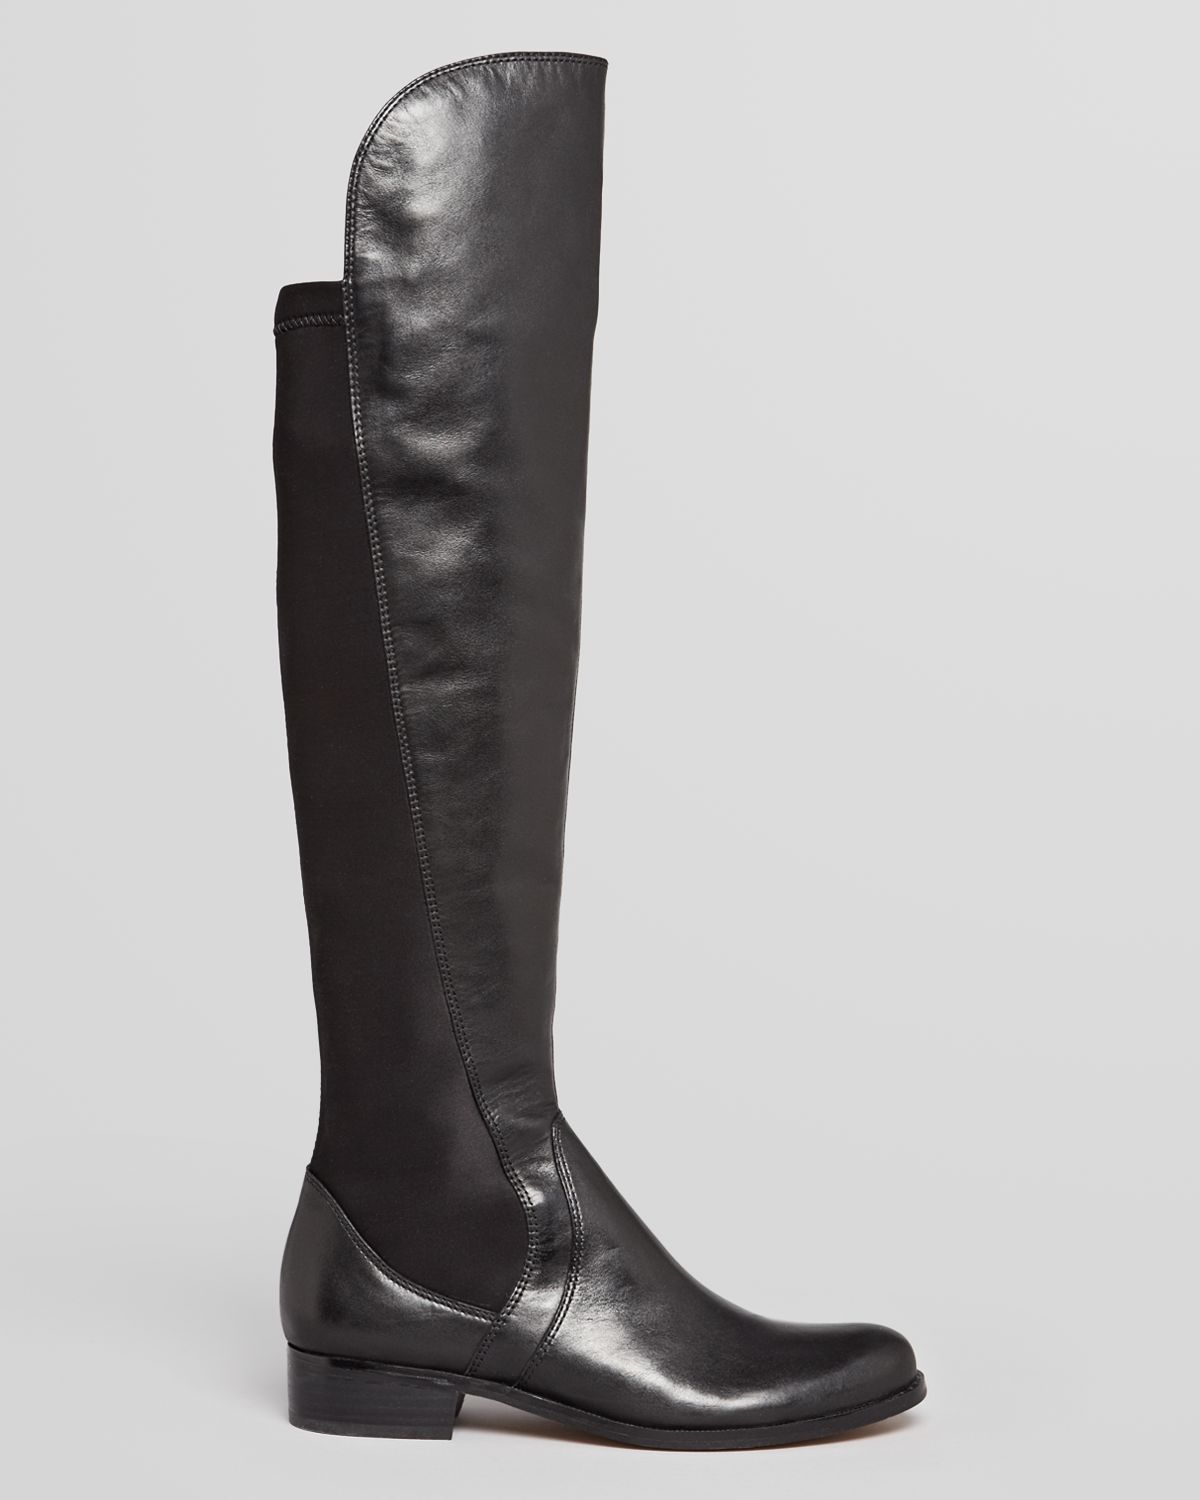 Corso como Over The Knee Riding Boots - Swift in Black | Lyst